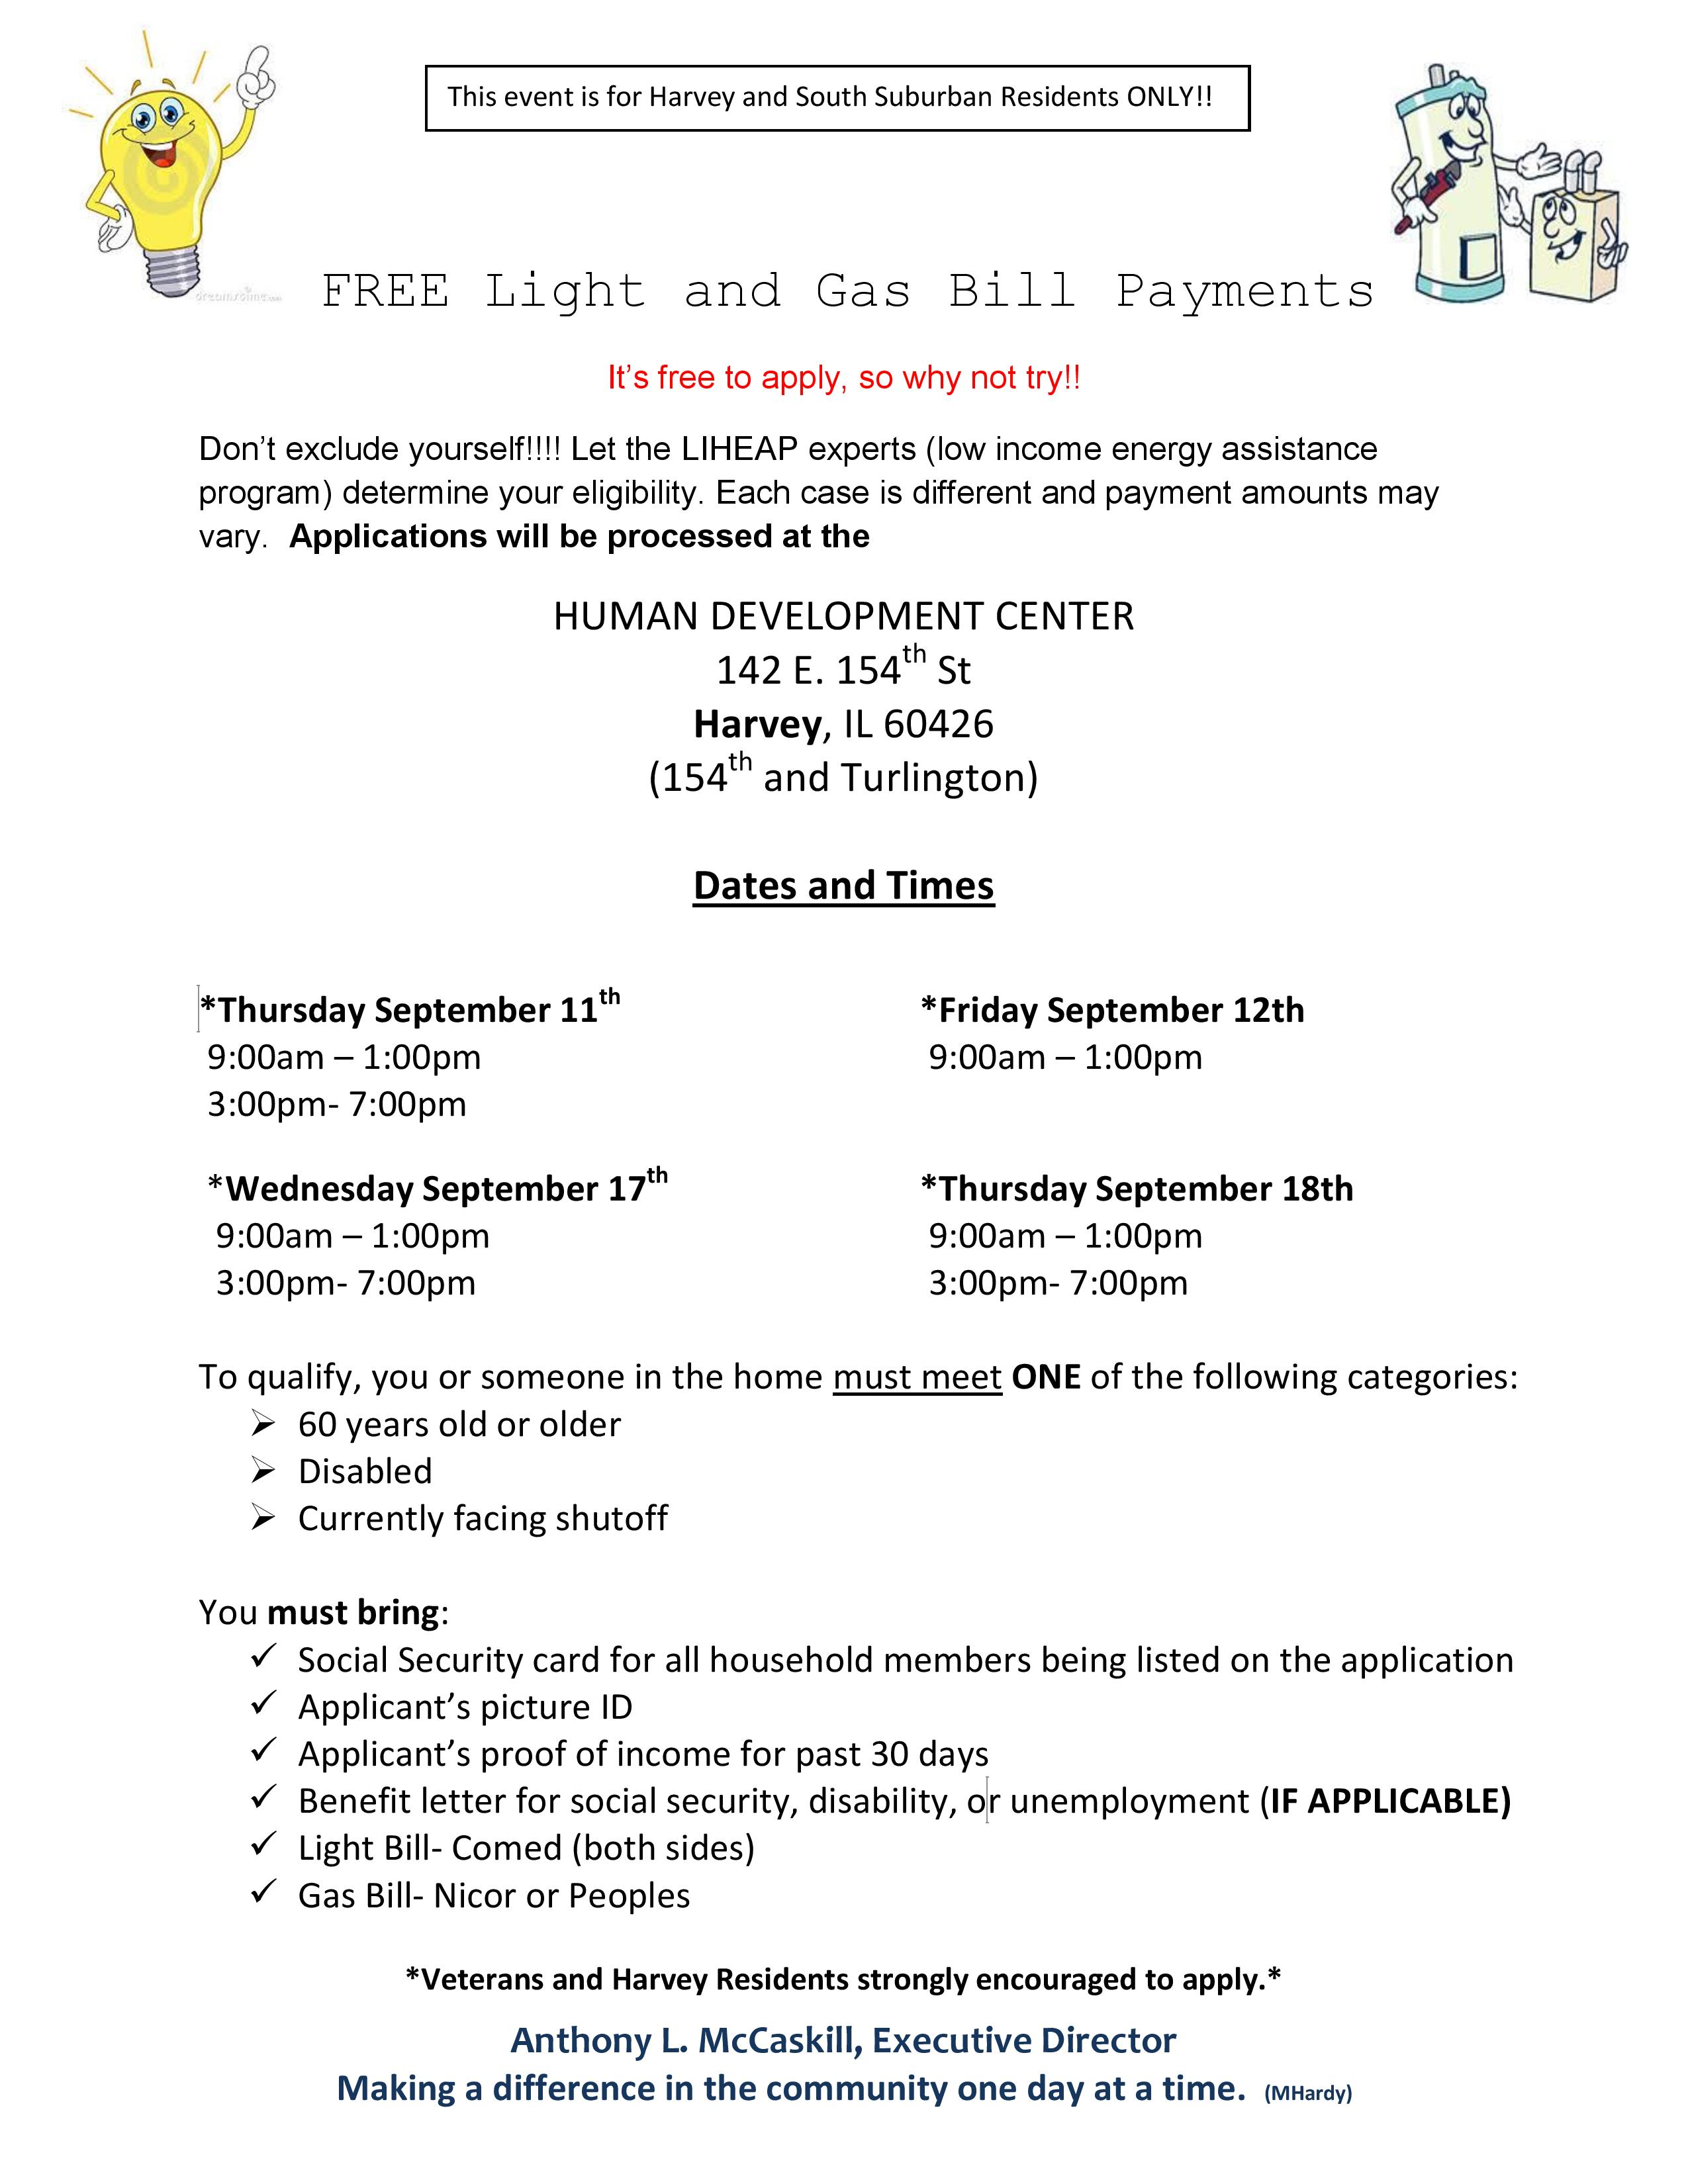 FREE Light and Gas Bill Payments